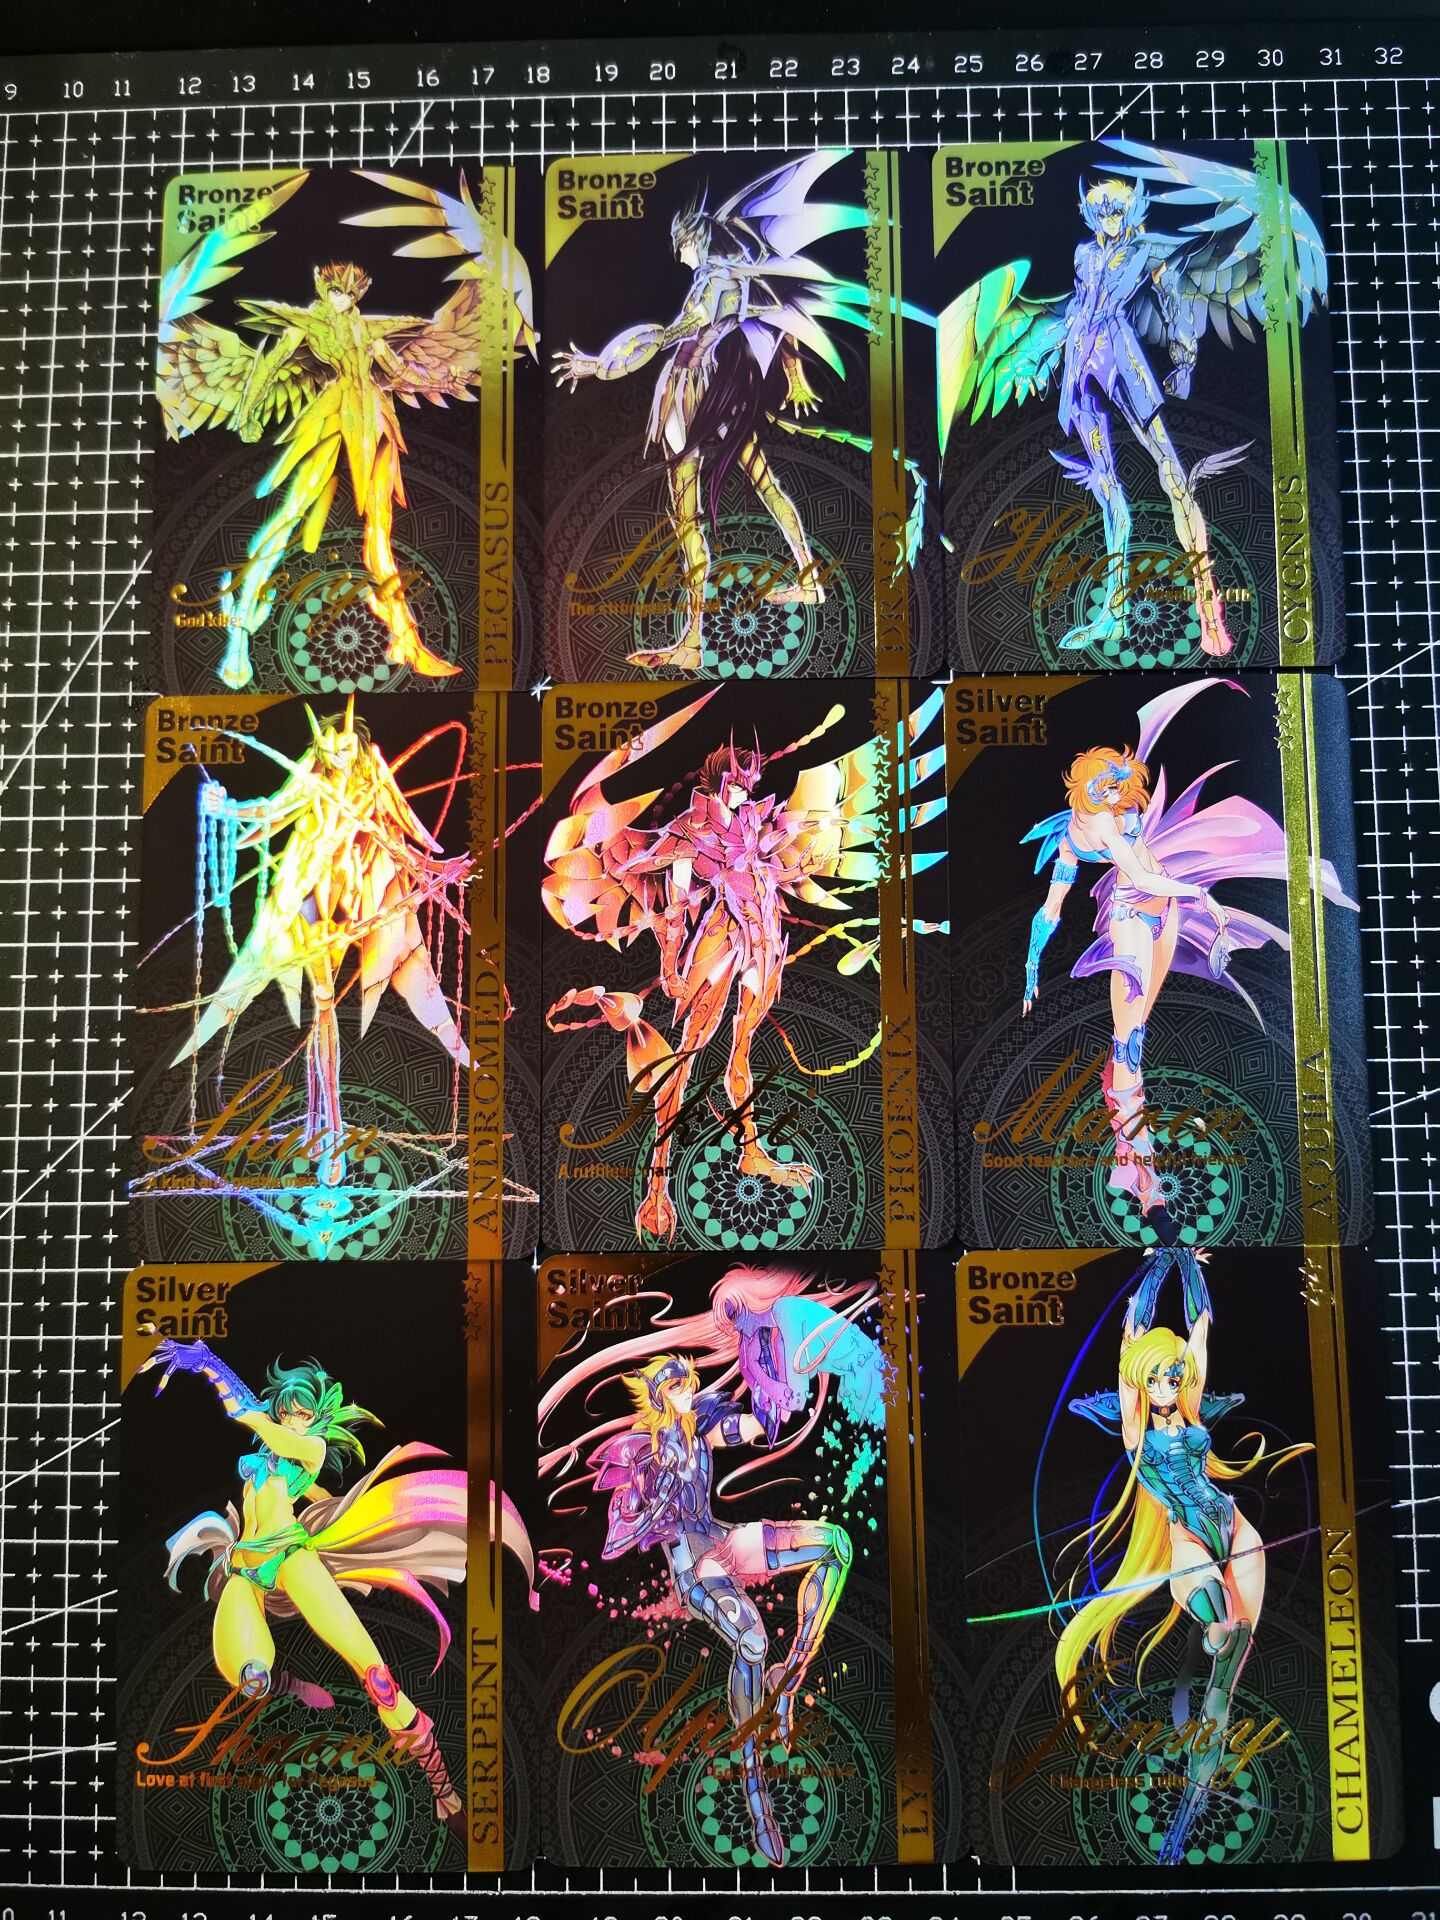 11pcs/set Saint Seiya Fourth bomb Toys Hobbies Hobby Collectibles Game Collection Anime Cards